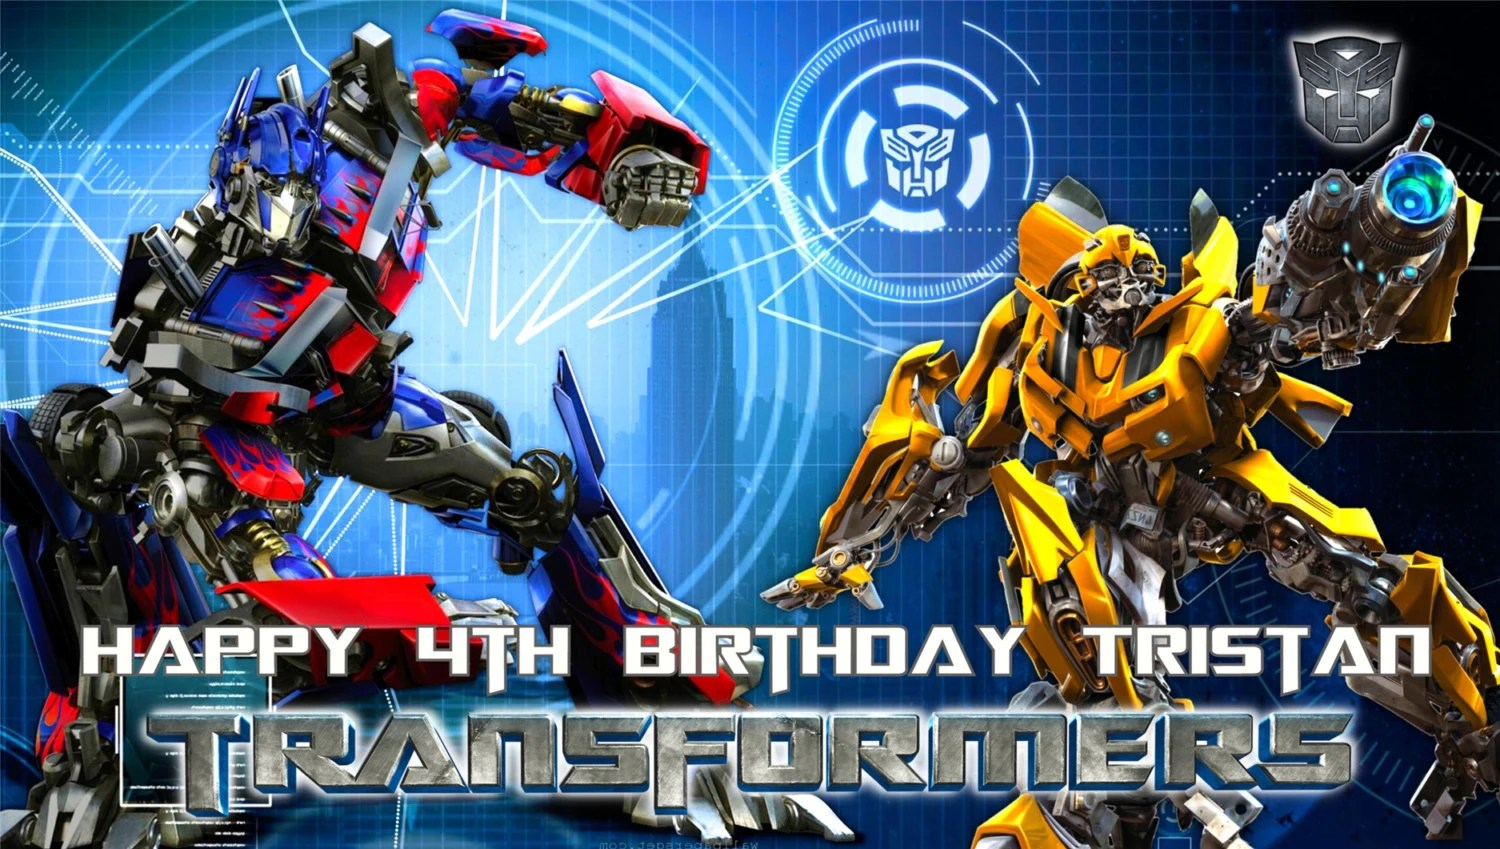 Transformers Optimus Prime Bumble Bee Happy Birthday